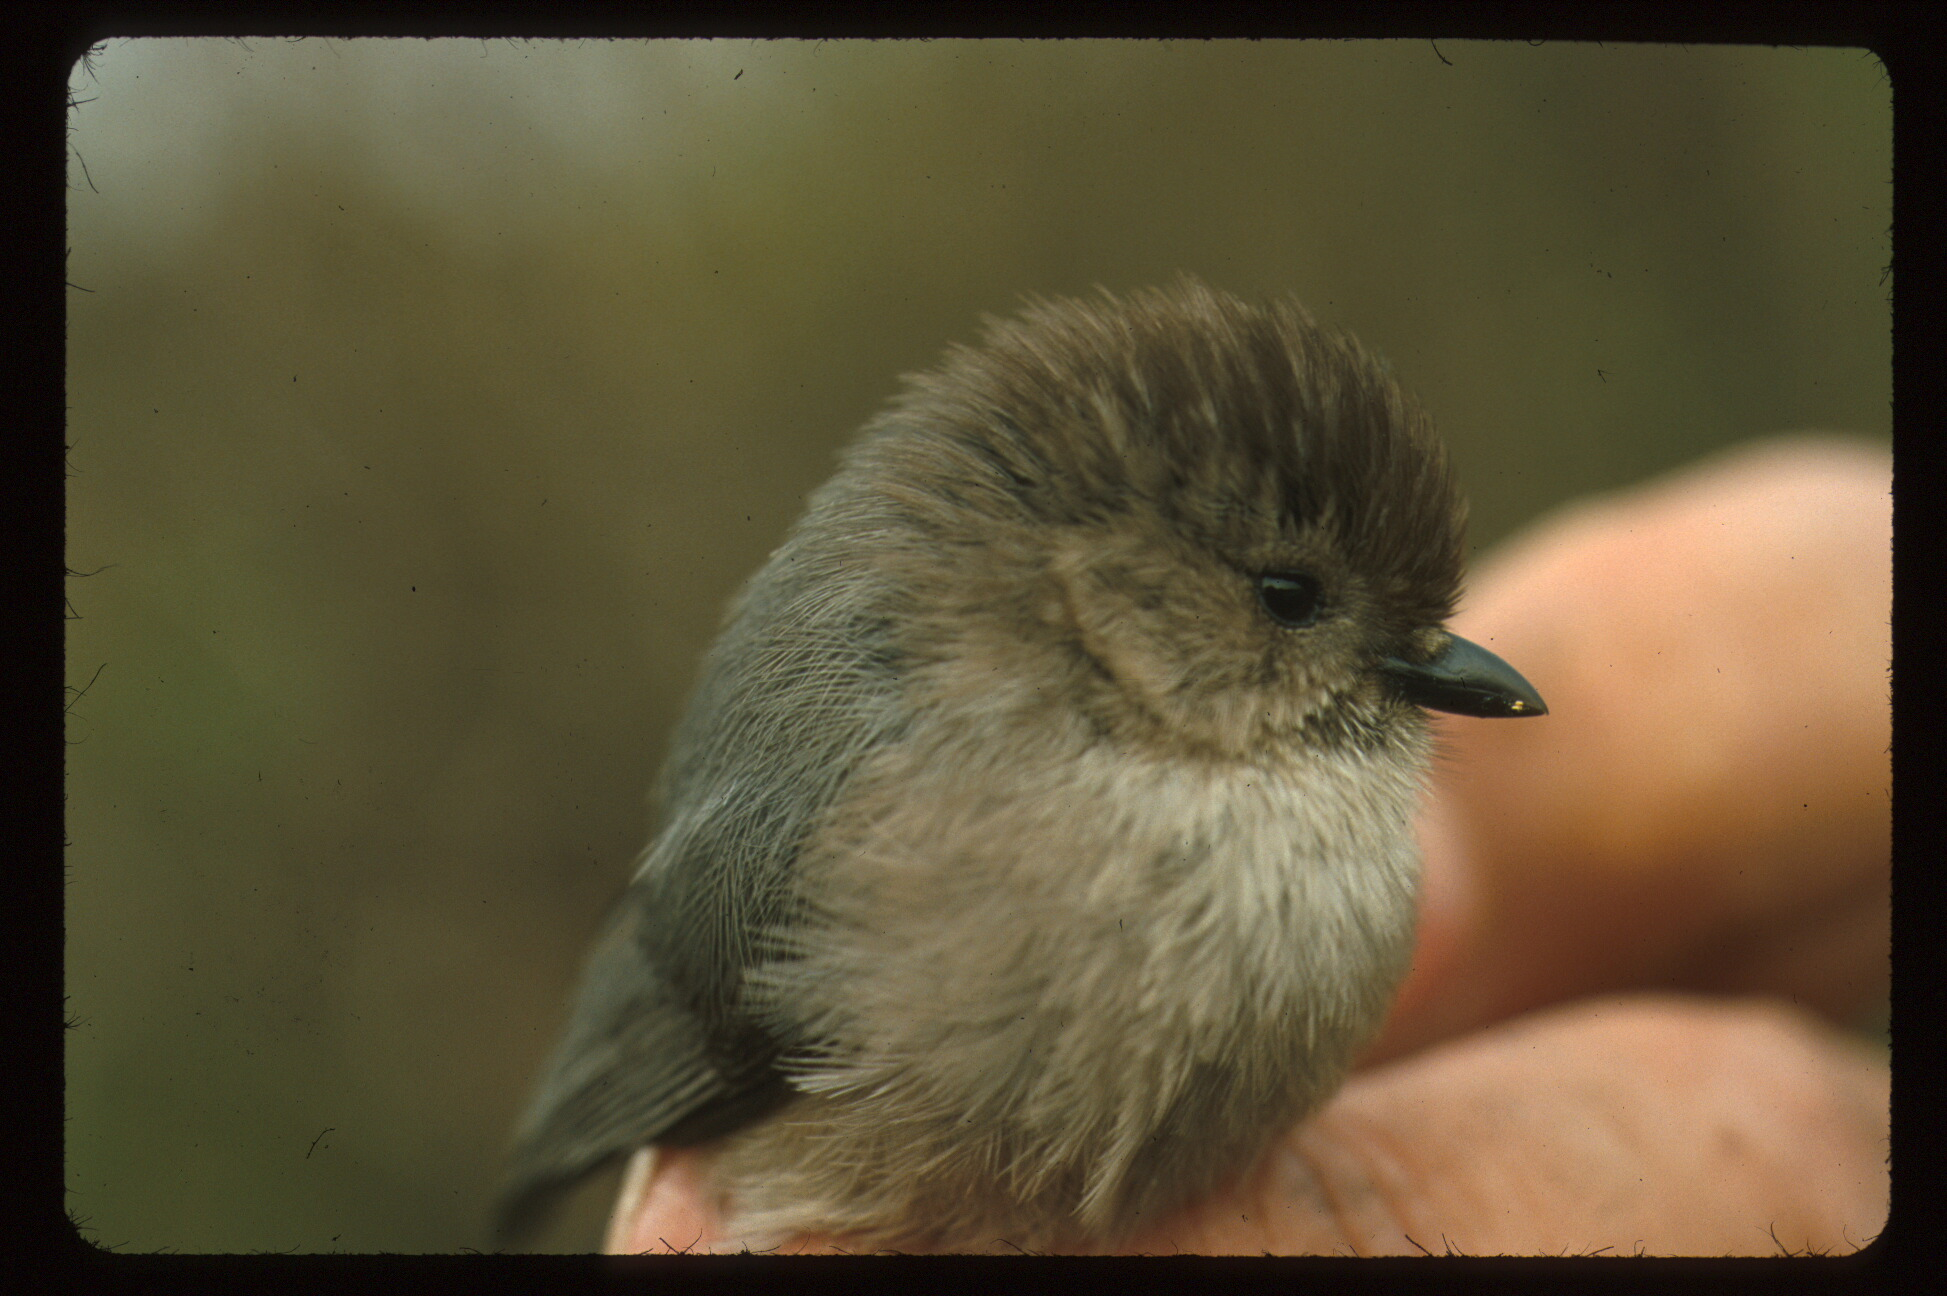 This tiny bushtit is likely a male, as females typically have light eyes. Note the size of the bird in relation to the handler's fingers (shown)